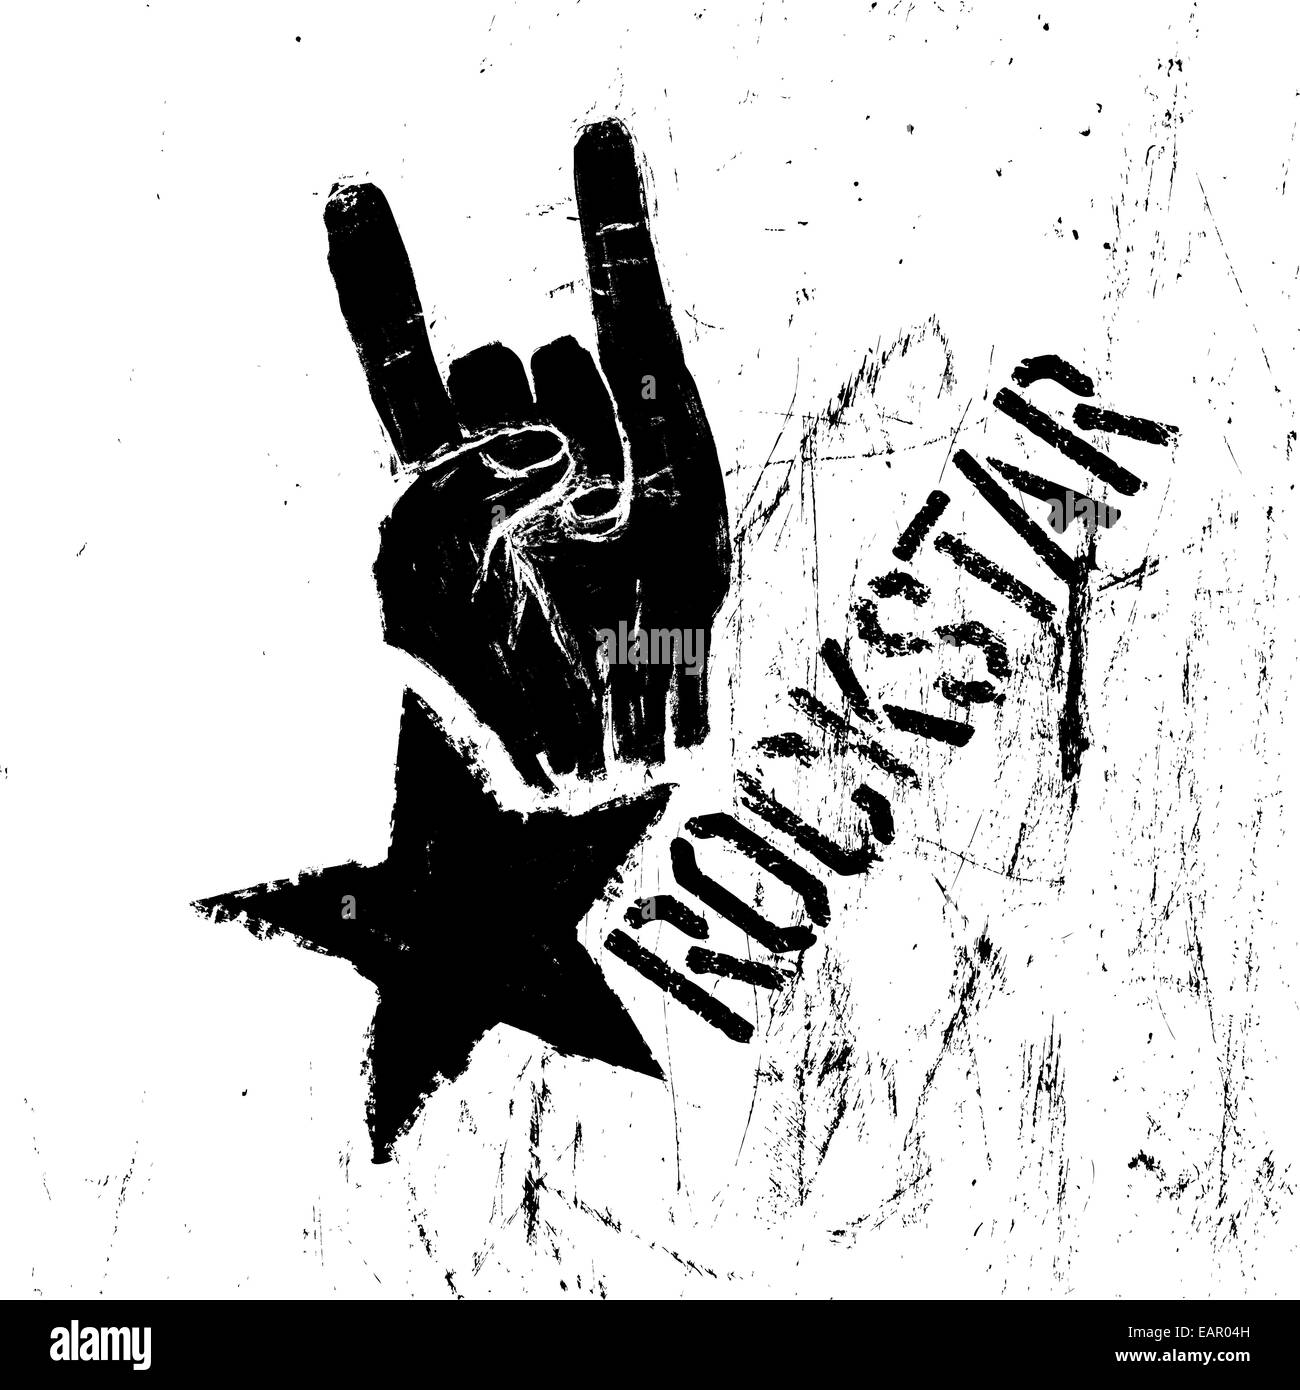 Rockstar symbol with sign of the horns gesture vector template with scratched texture